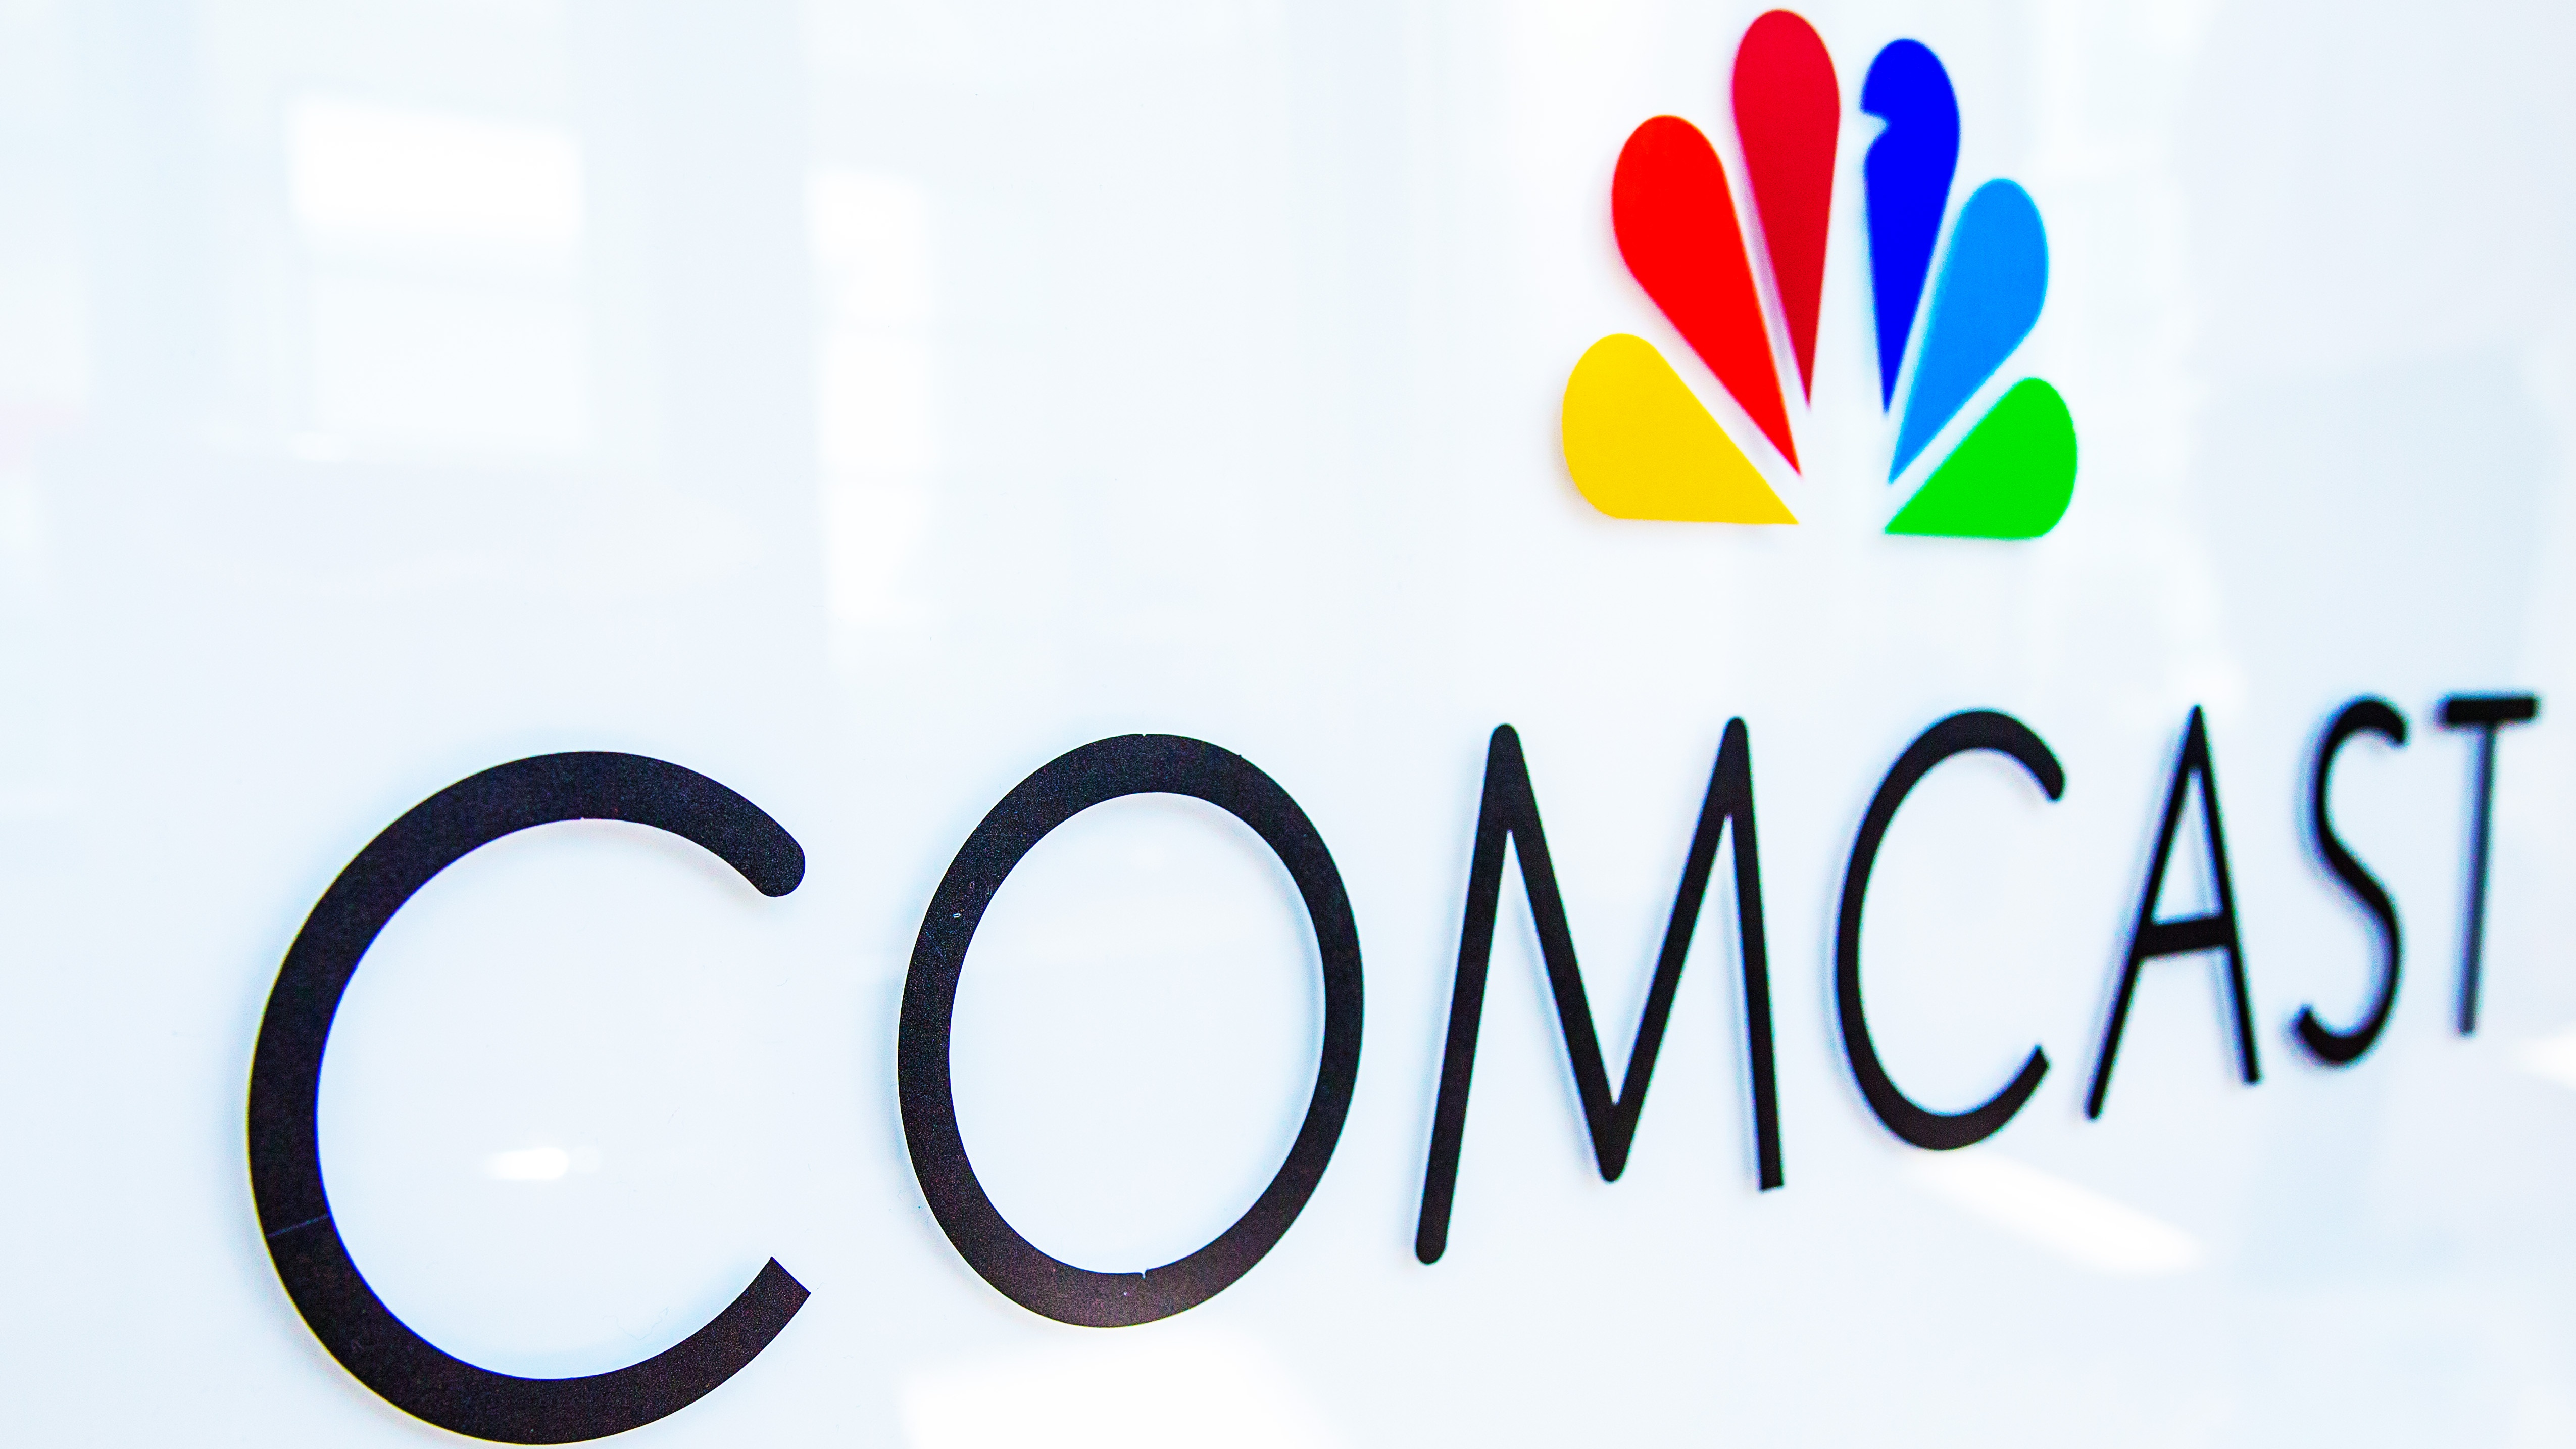 Comcast Opens nearly 400 Free Xfinity WiFi Hotspots to Aid